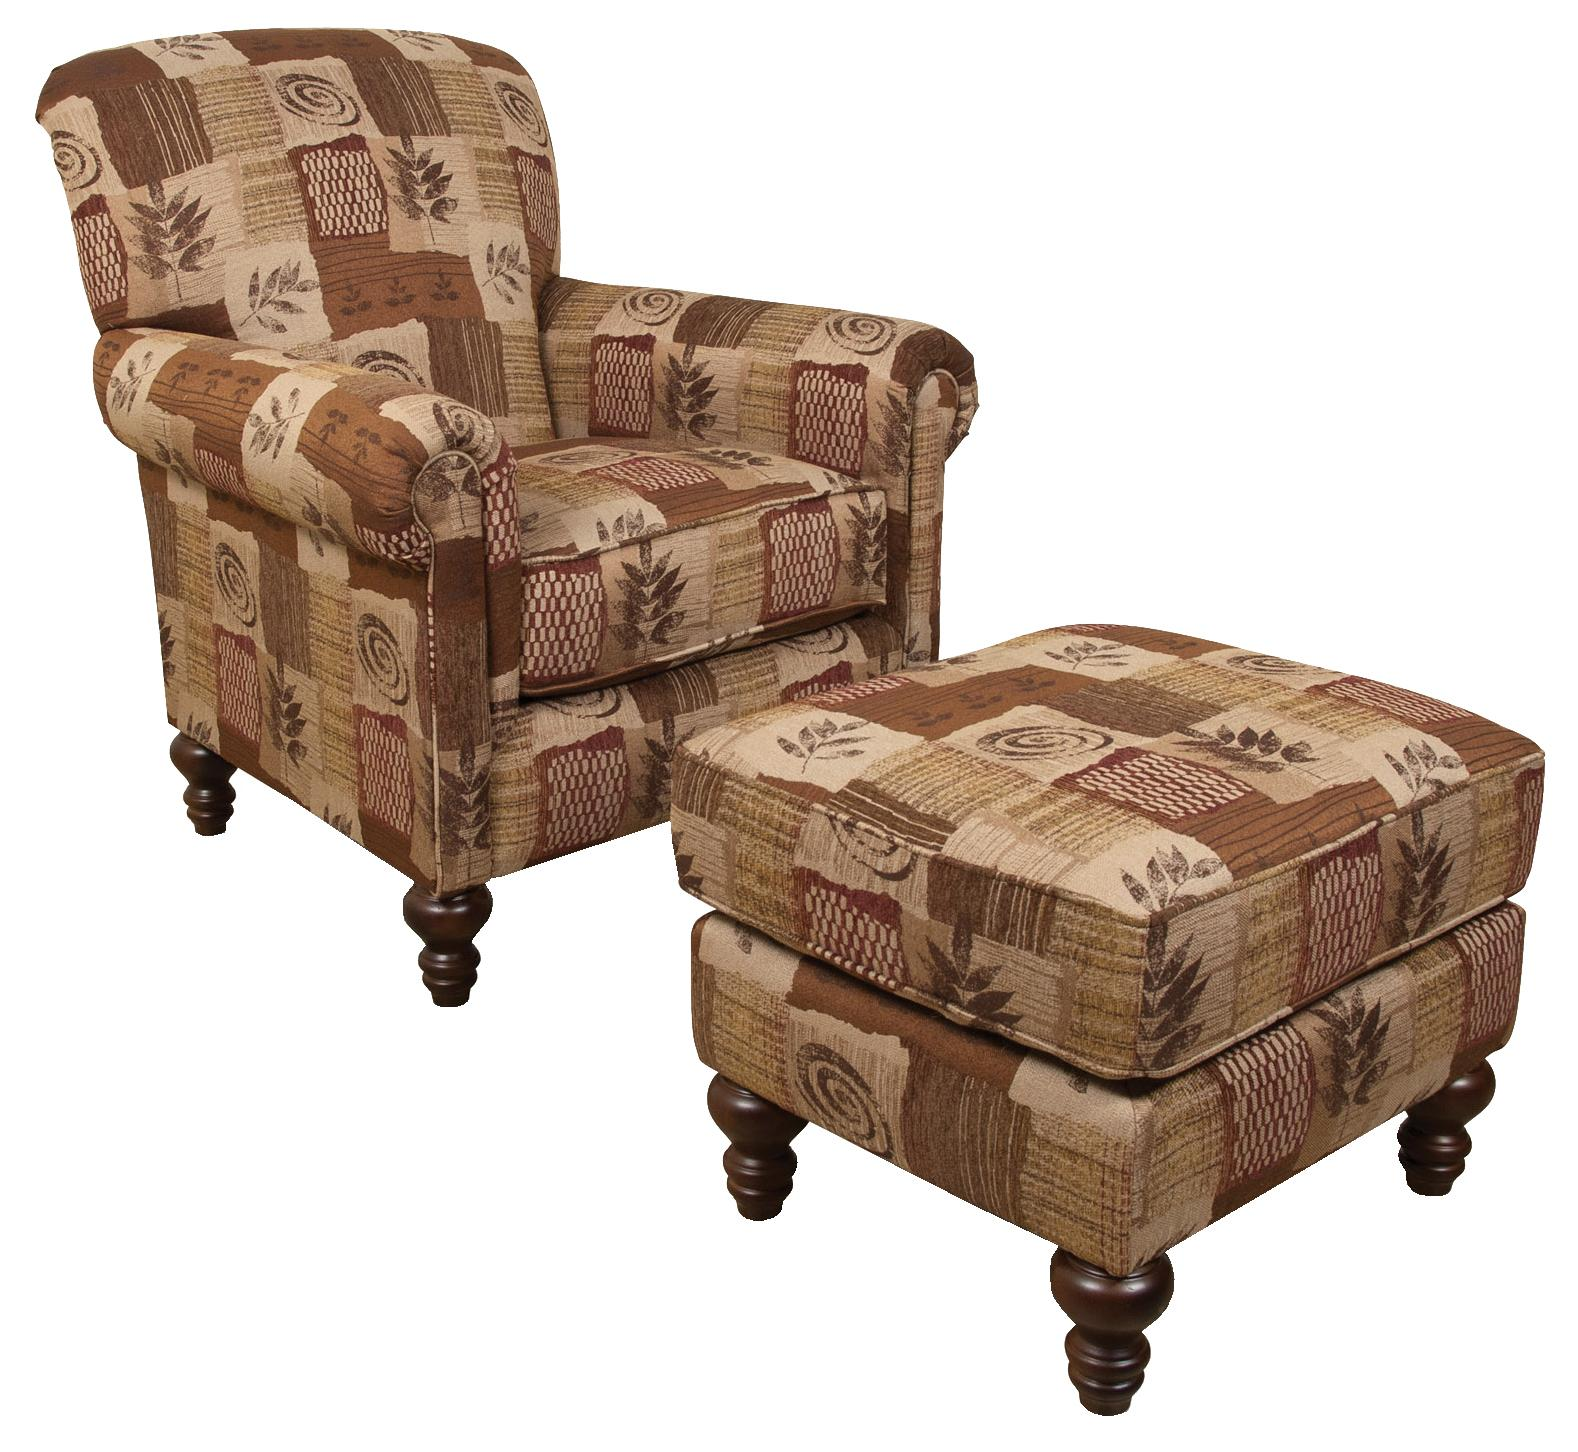 England Eliza Chair and Ottoman Set - Item Number: 634+637